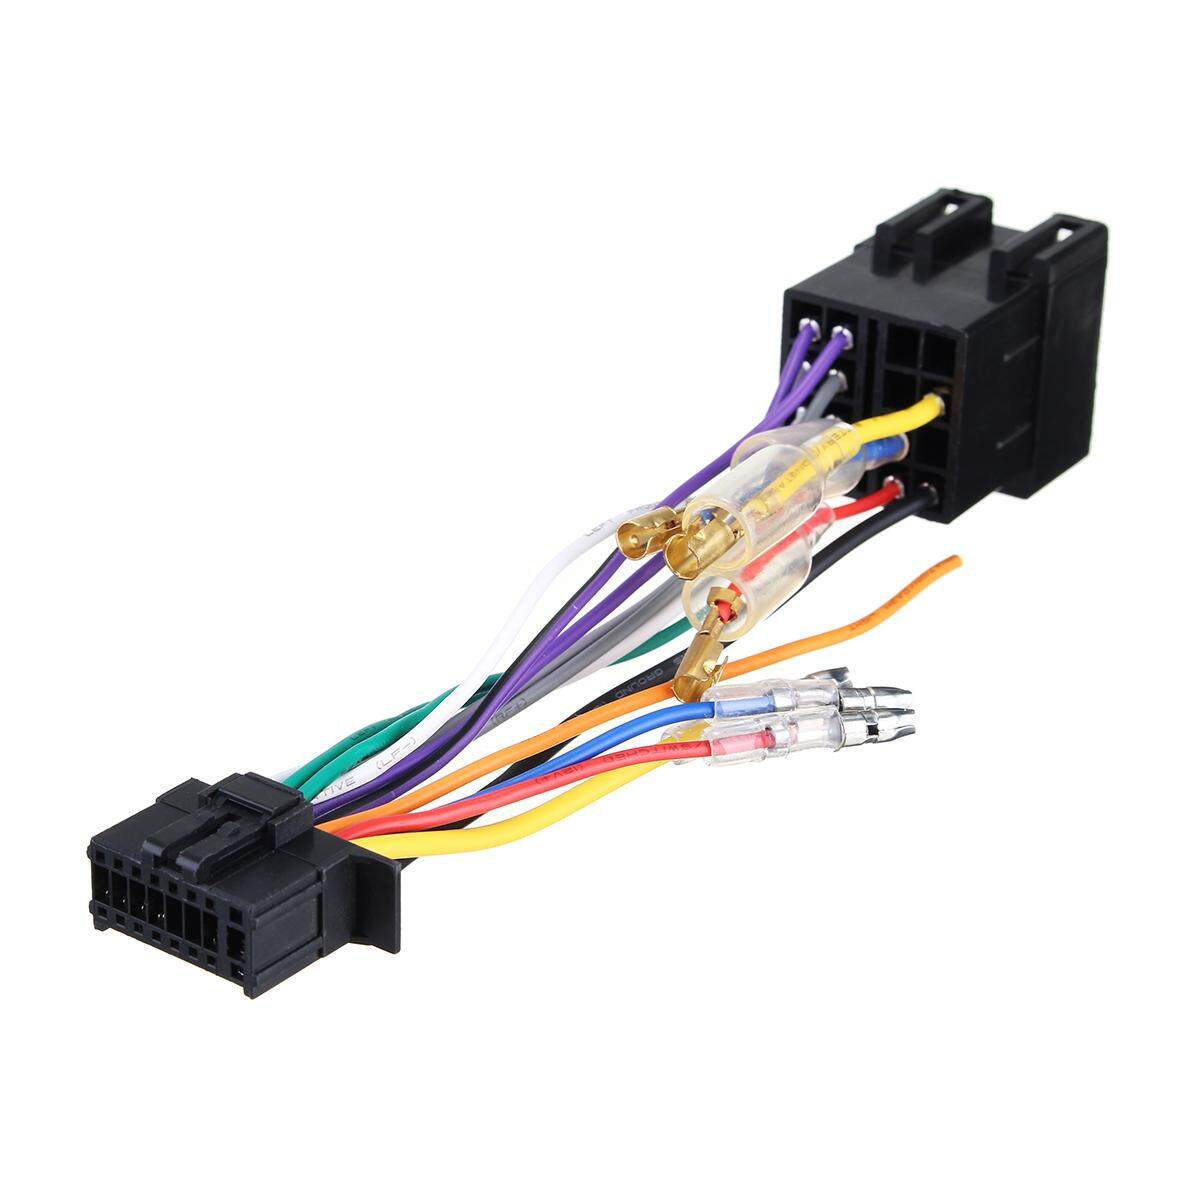 hight resolution of for pioneer 16 pin iso wiring harness connector adaptor car stereo radio loom pi100